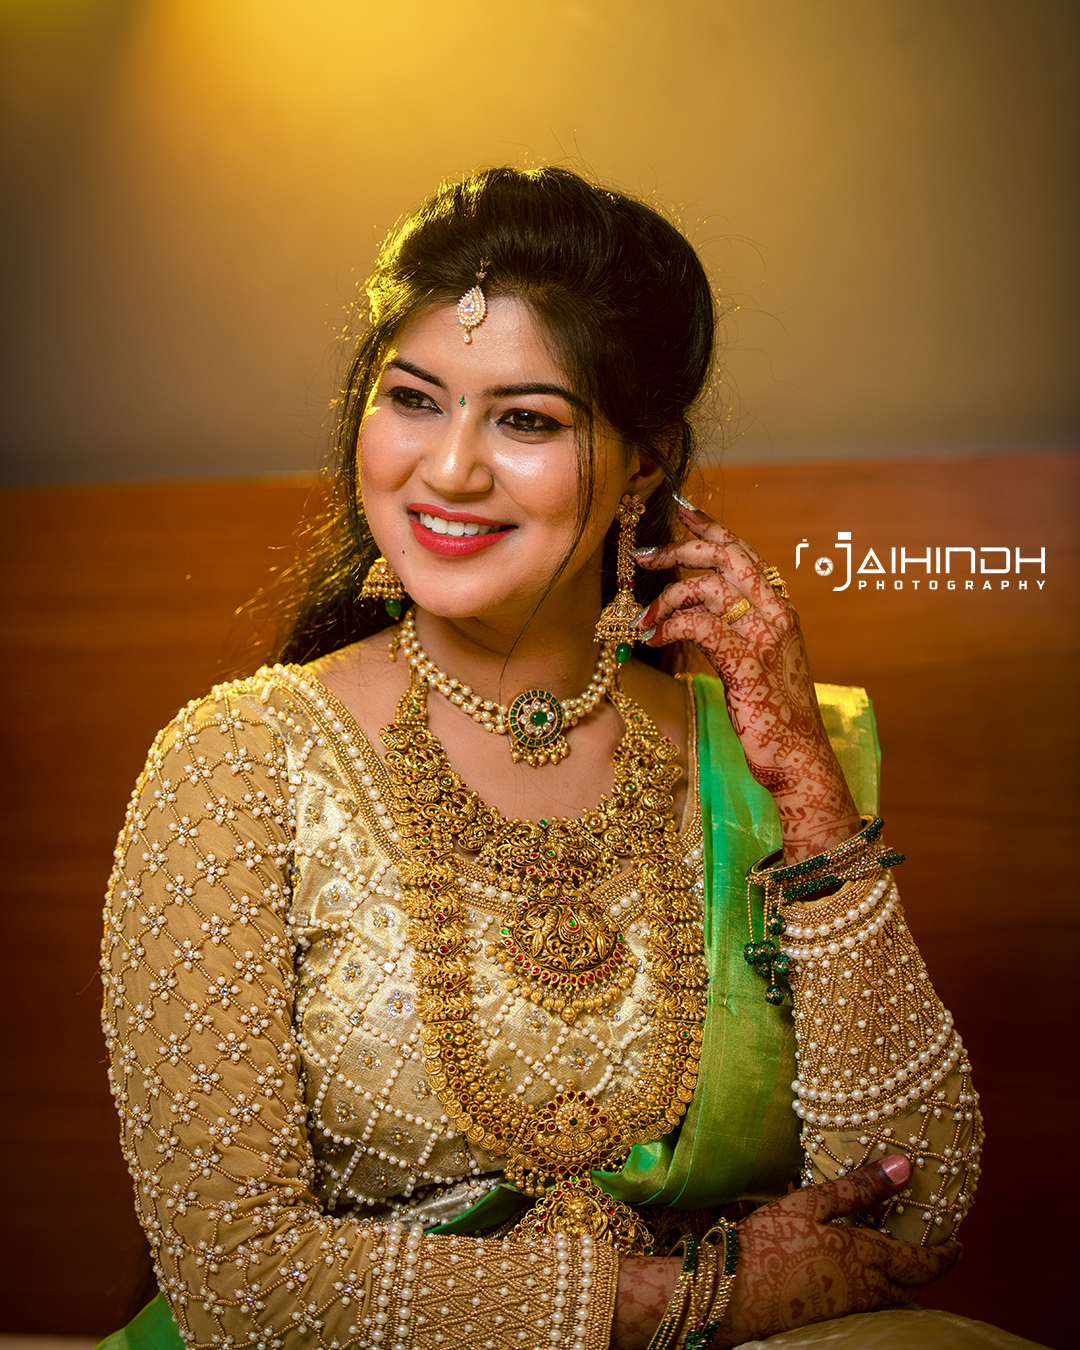 Candid-Photography-6